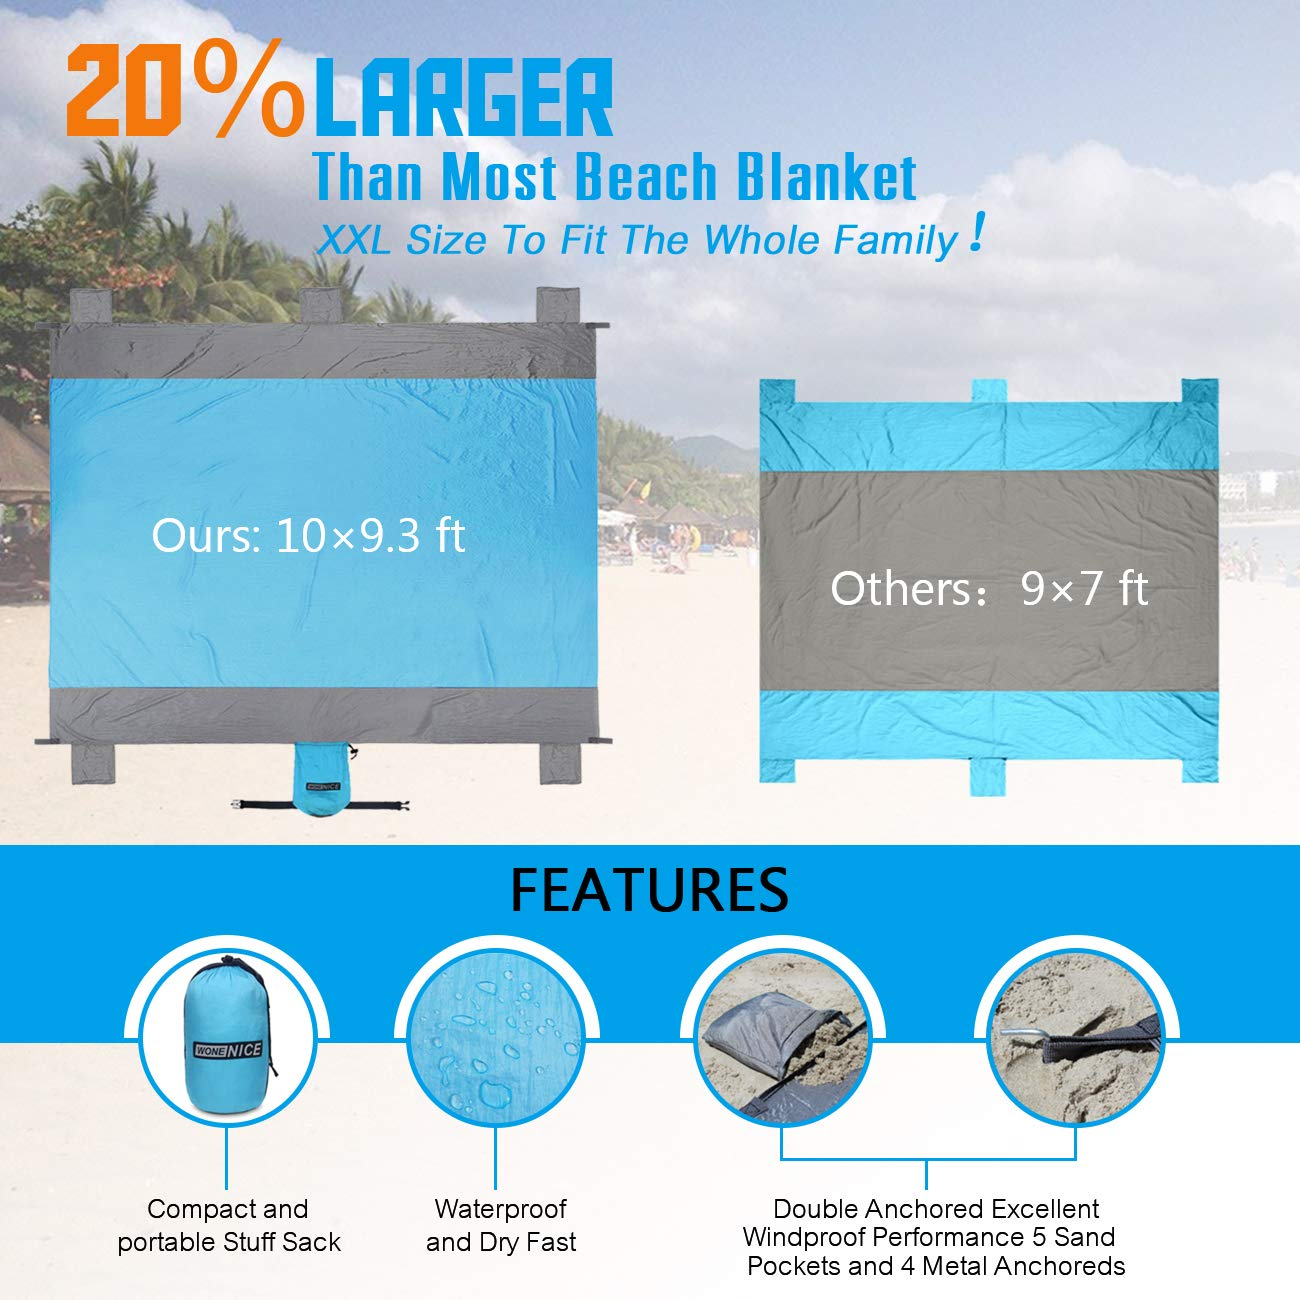 10 x 9 Extra Large Outdoor Beach Blanket Waterproof Quick-Dry Lightweight Durable Nylon Pinic Blanket with 4 Stacks for Picnic WoneNice Sand Free Beach Mat Blanket Hiking Camping